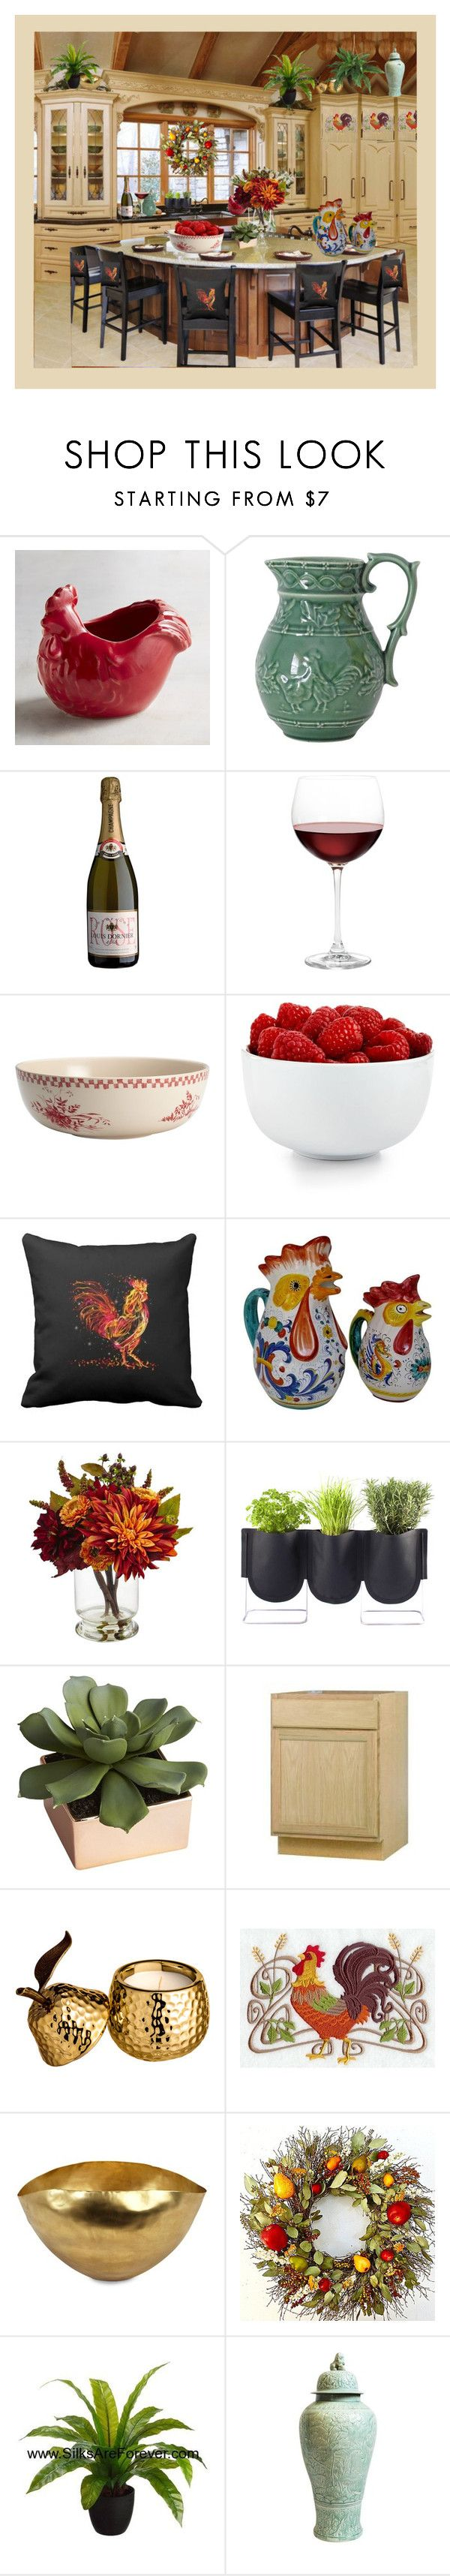 """""""RED ROSTER COUNTRY KITCHEN"""" by melange-art ❤ liked on Polyvore featuring interior, interiors, interior design, home, home decor, interior decorating, Pier 1 Imports, Nordstrom, BonJour and The Cellar"""